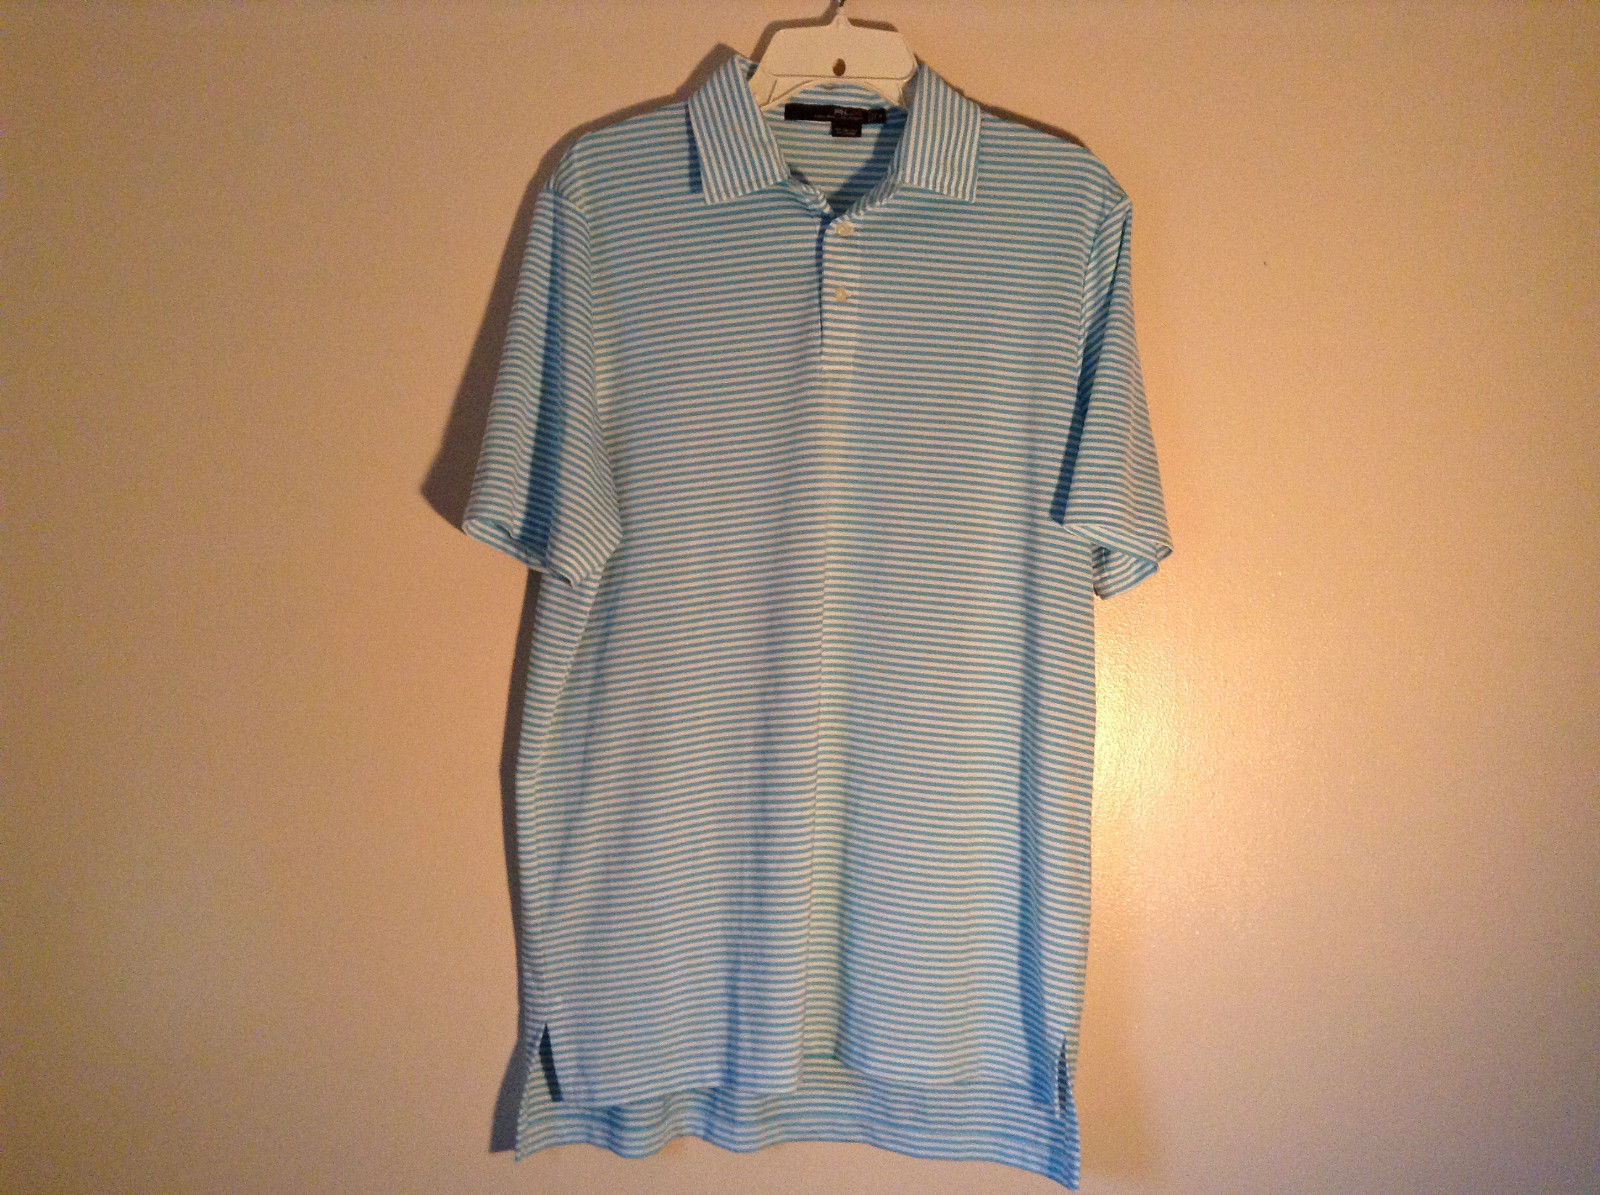 Short Sleeve Blue and White Striped Ralph Lauren Polo Casual Shirt Size Medium